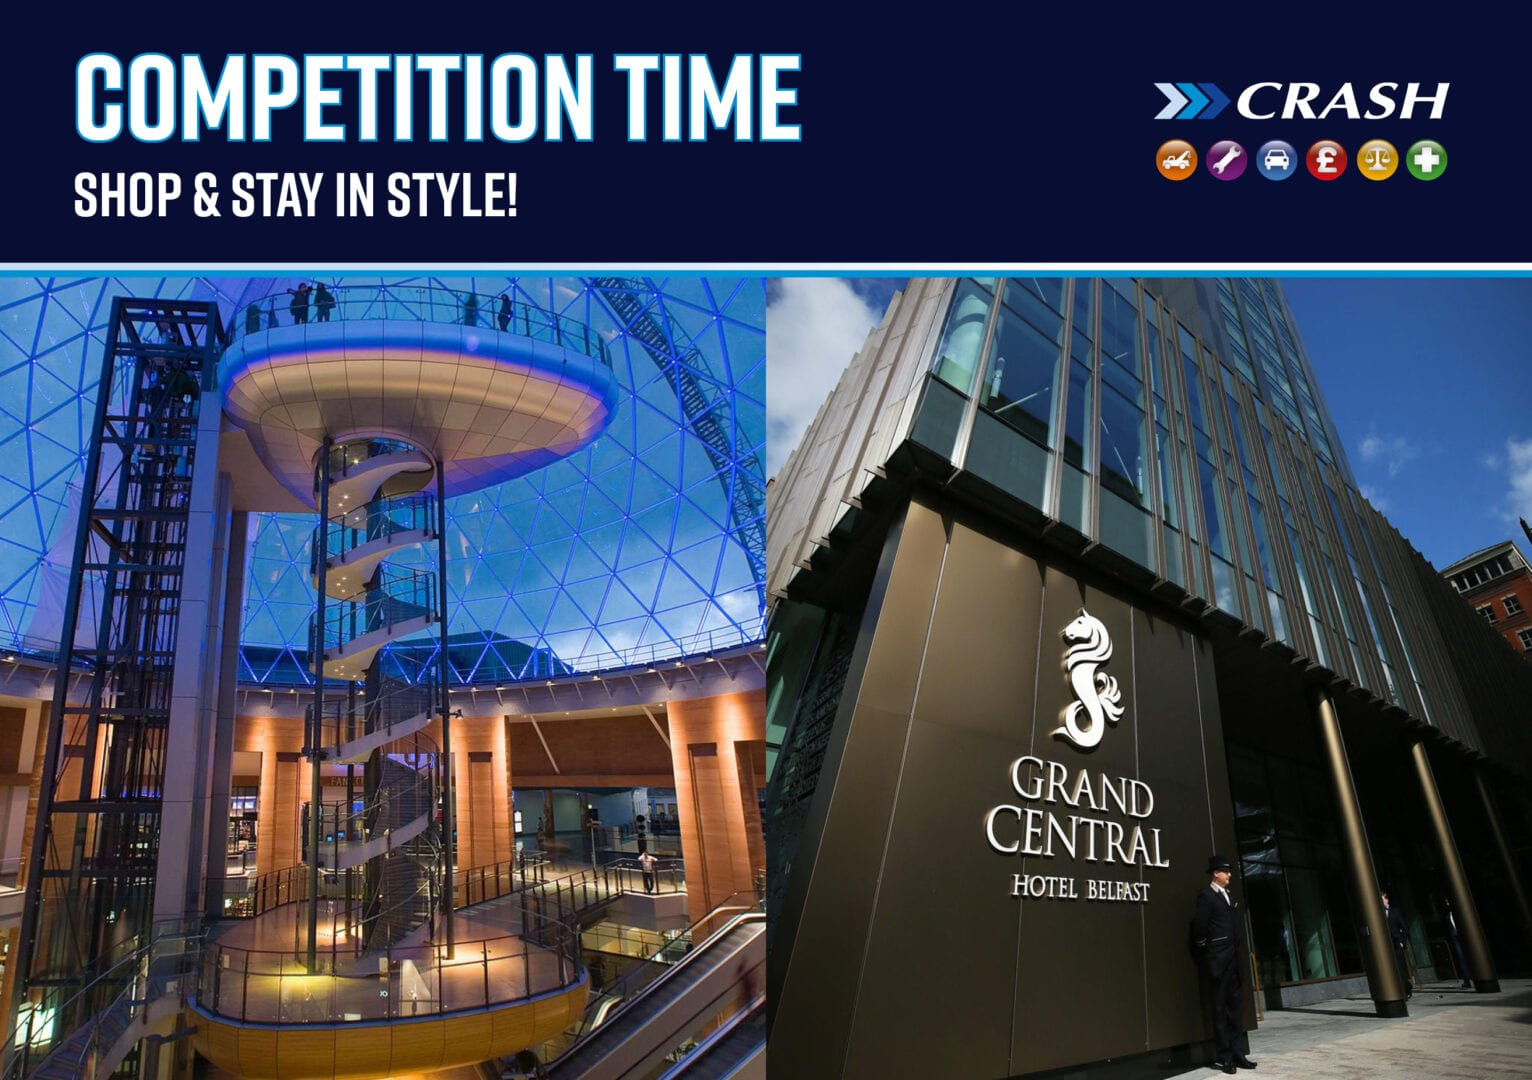 competition time shop and stay in style crash services